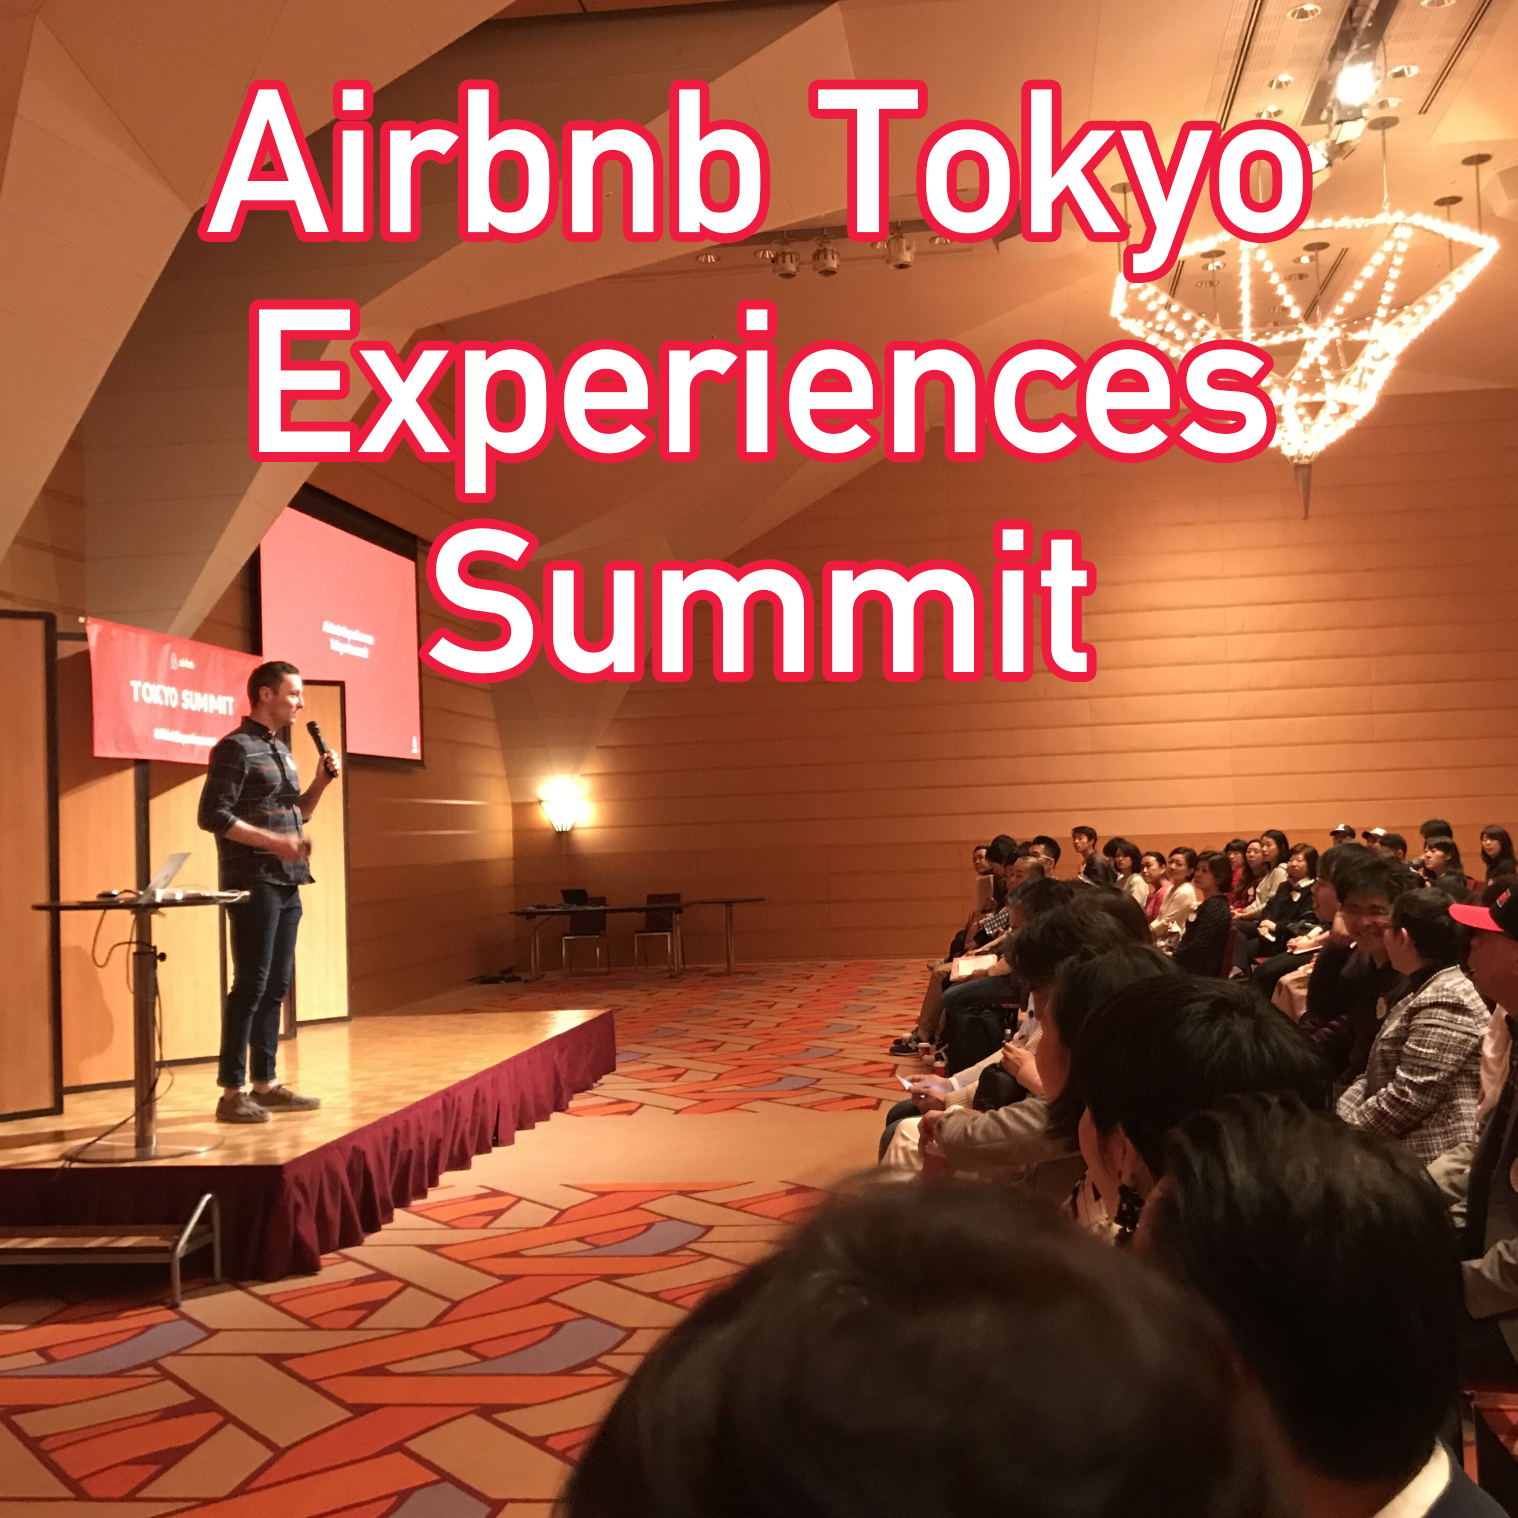 Airbnb体験ホストテクニック&Tokyo Experiences Summitレポート